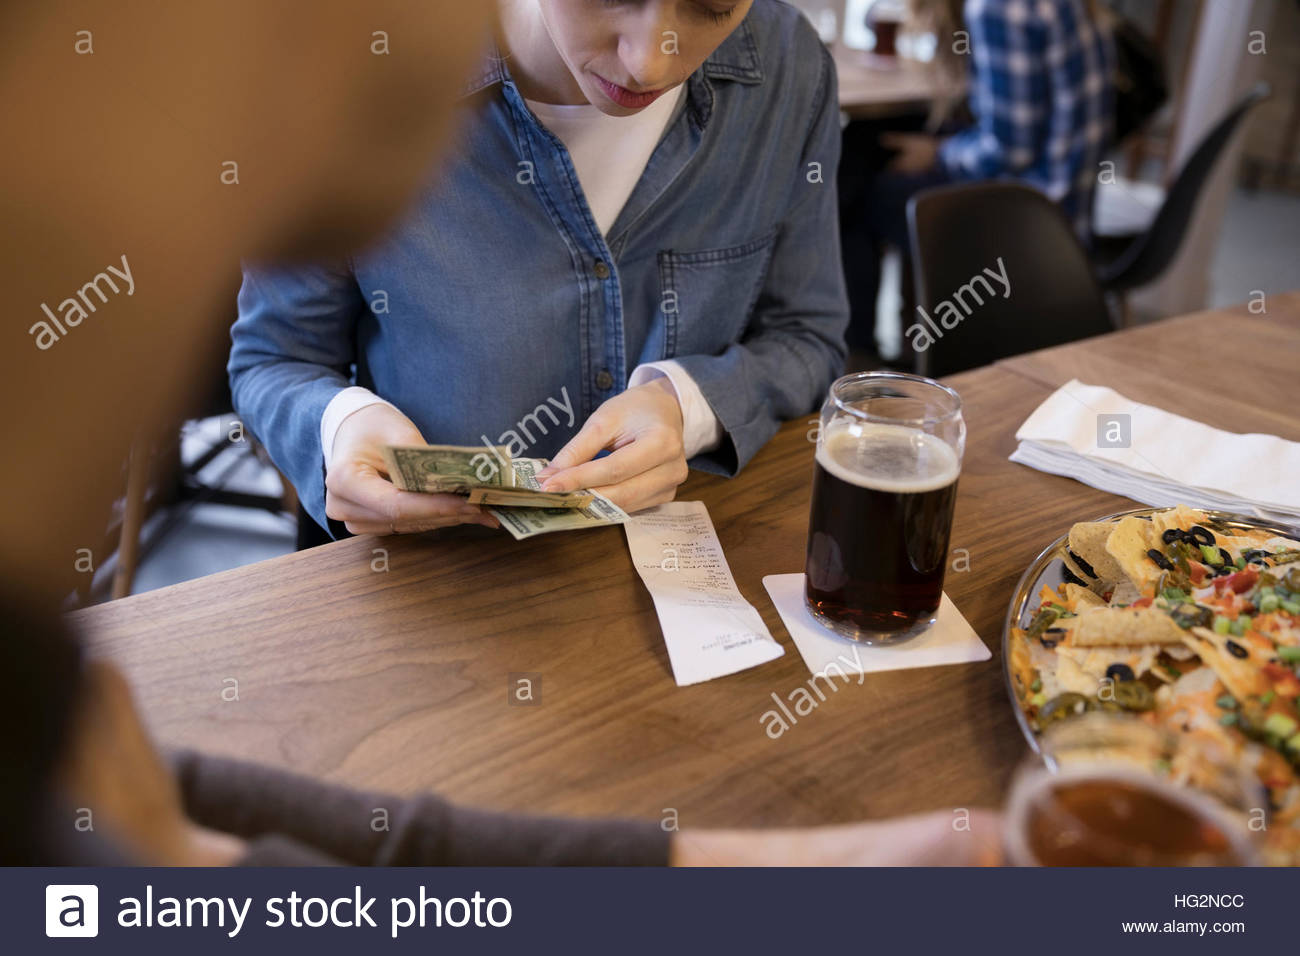 Woman with cash paying bill for beer in brewery restaurant - Stock Image